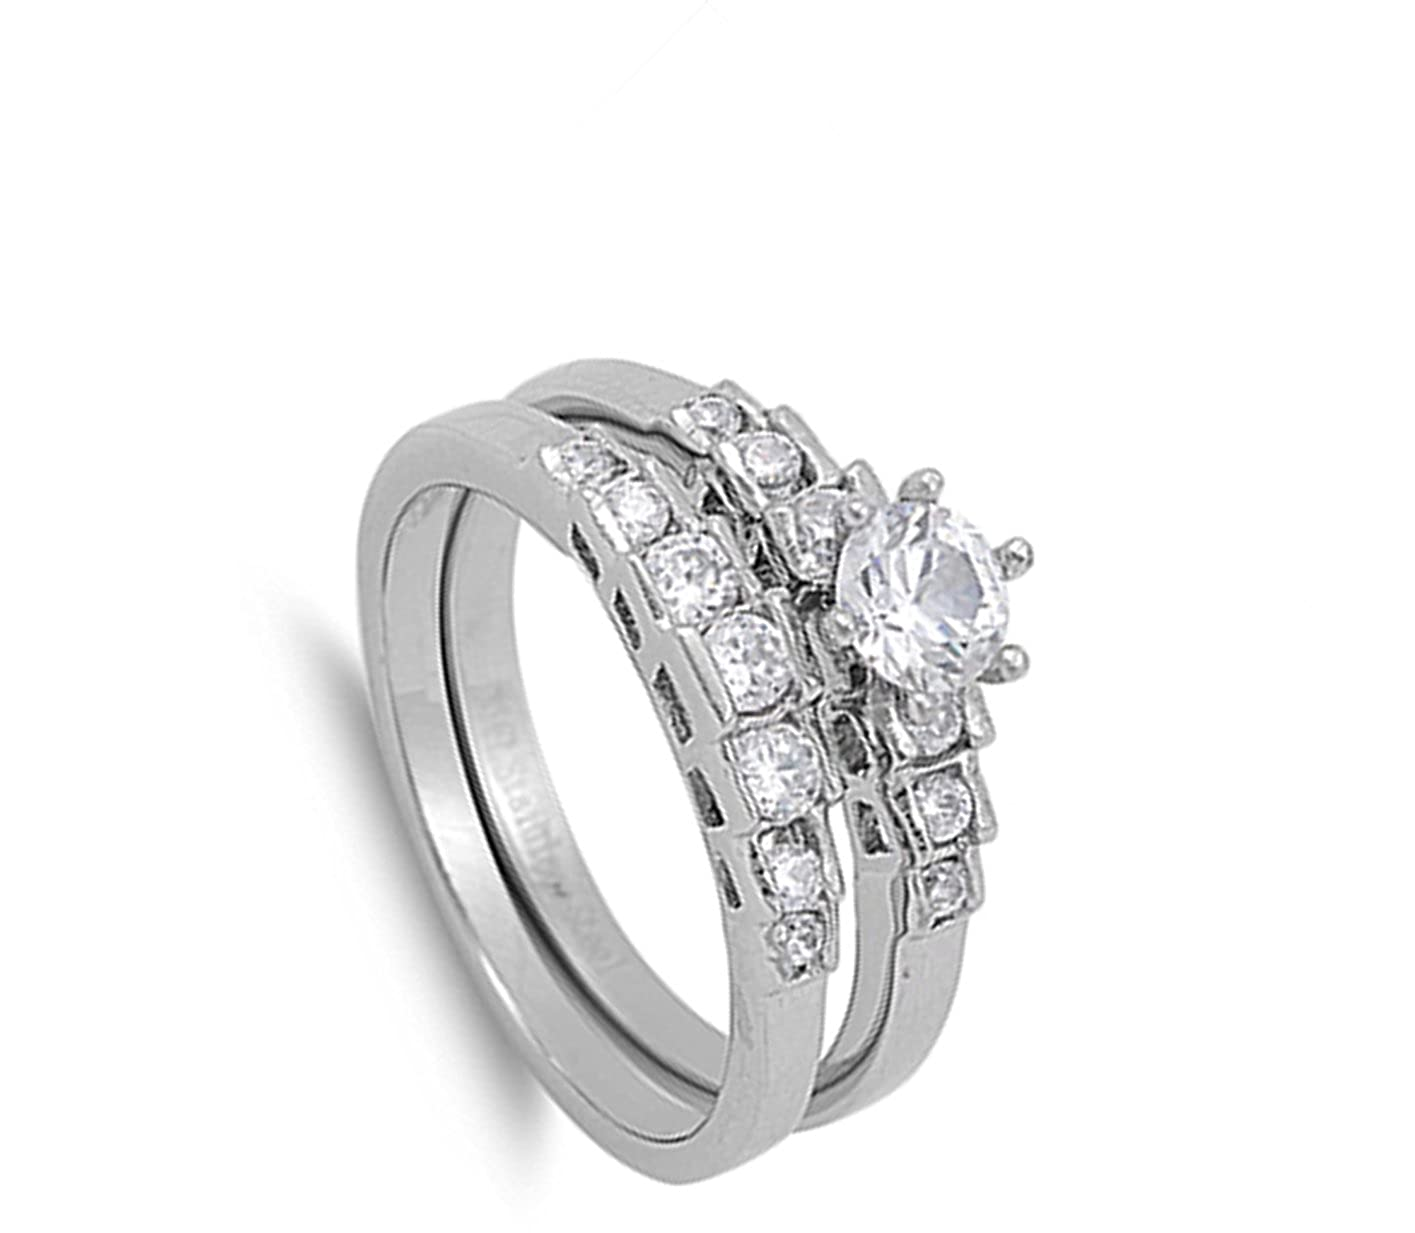 Womens Wedding Set Clear CZ Solitaire Ring 316L Stainless Steel Band Sizes 5-10